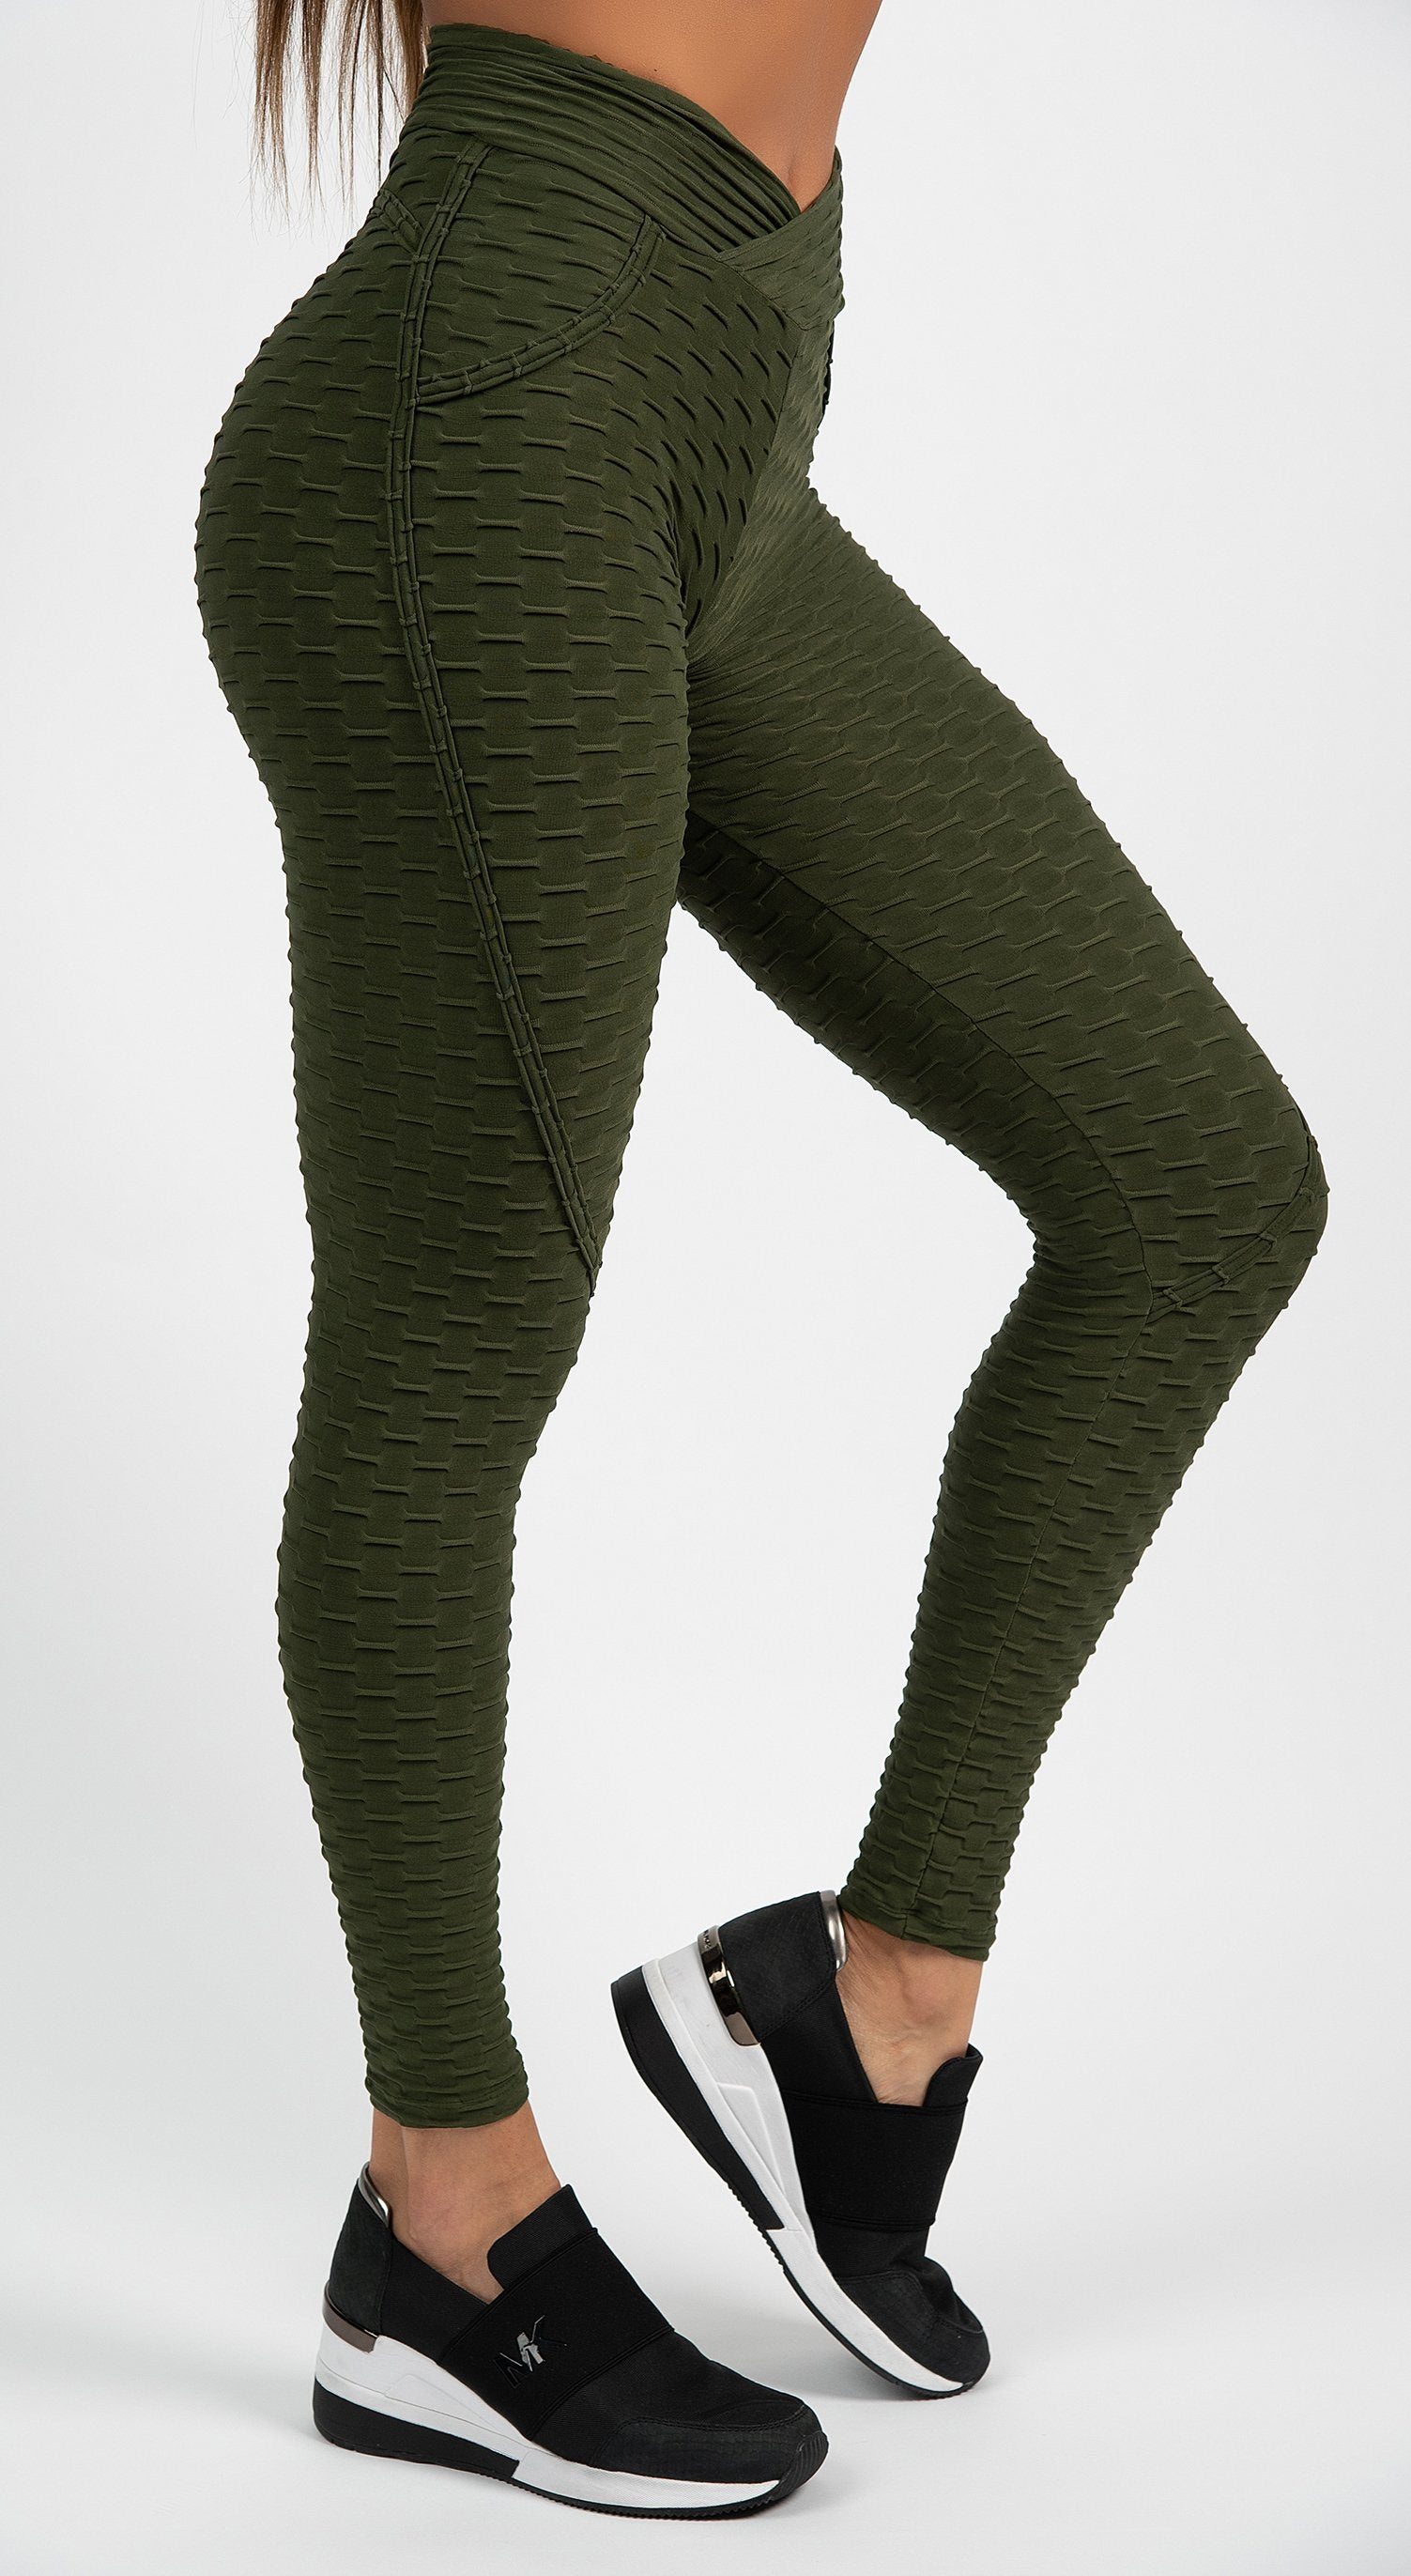 Anti Cellulite Textured Heart Booty Effect Olive Green